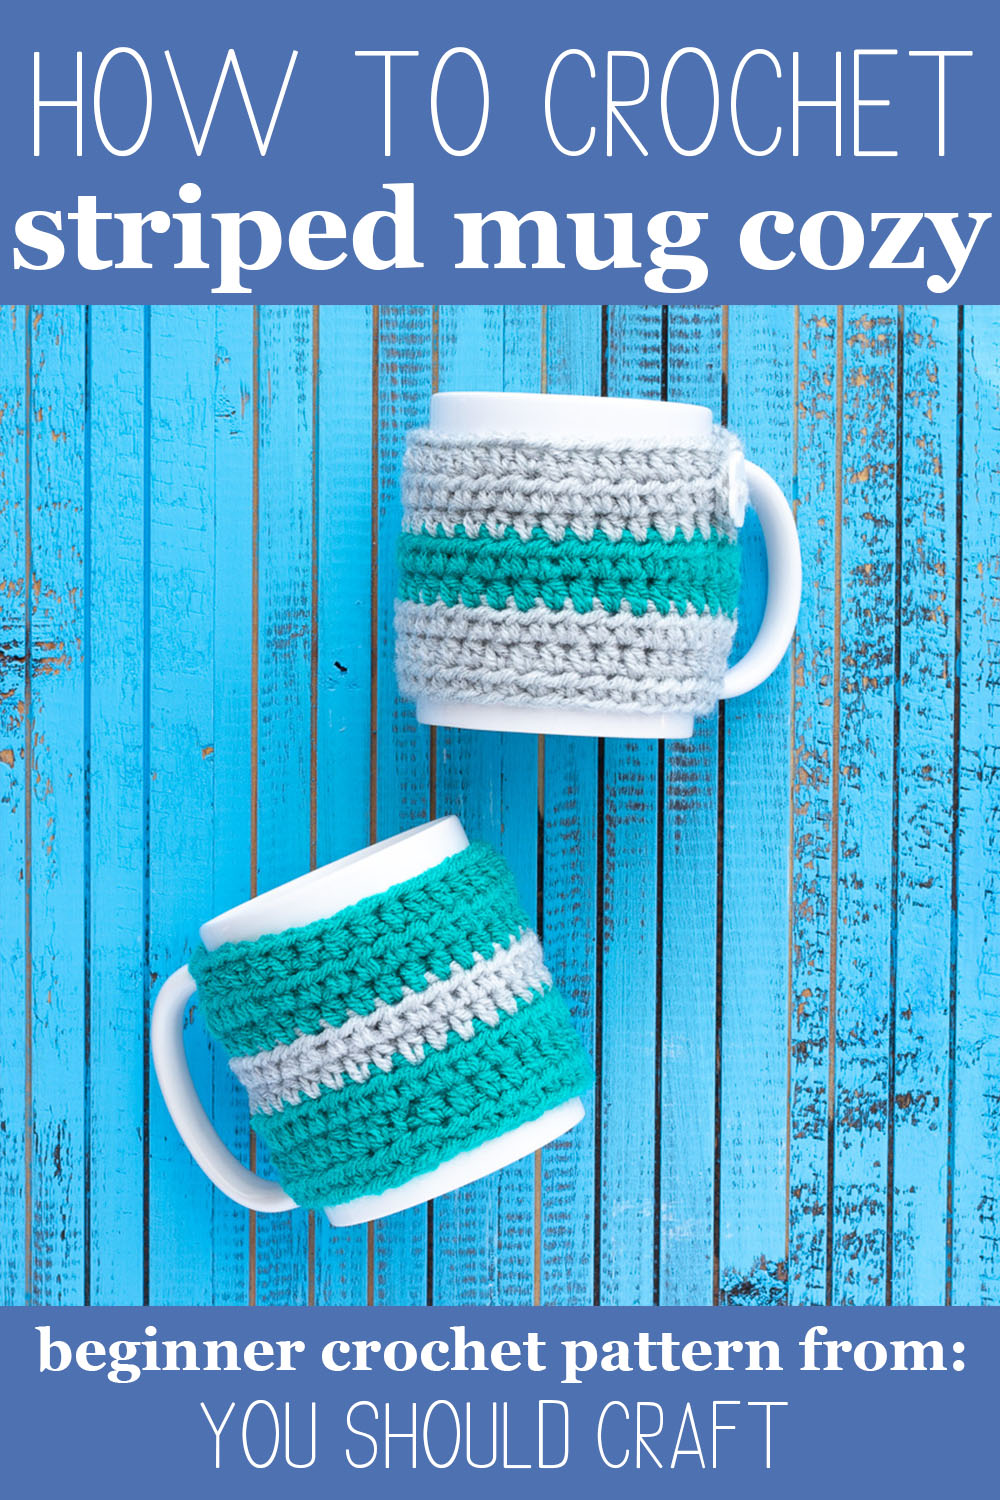 """two white mugs with striped mug cozies on a blue wooden background with text overlay """"how to crochet striped mug cozy - beginner crochet pattern from: you should craft"""""""